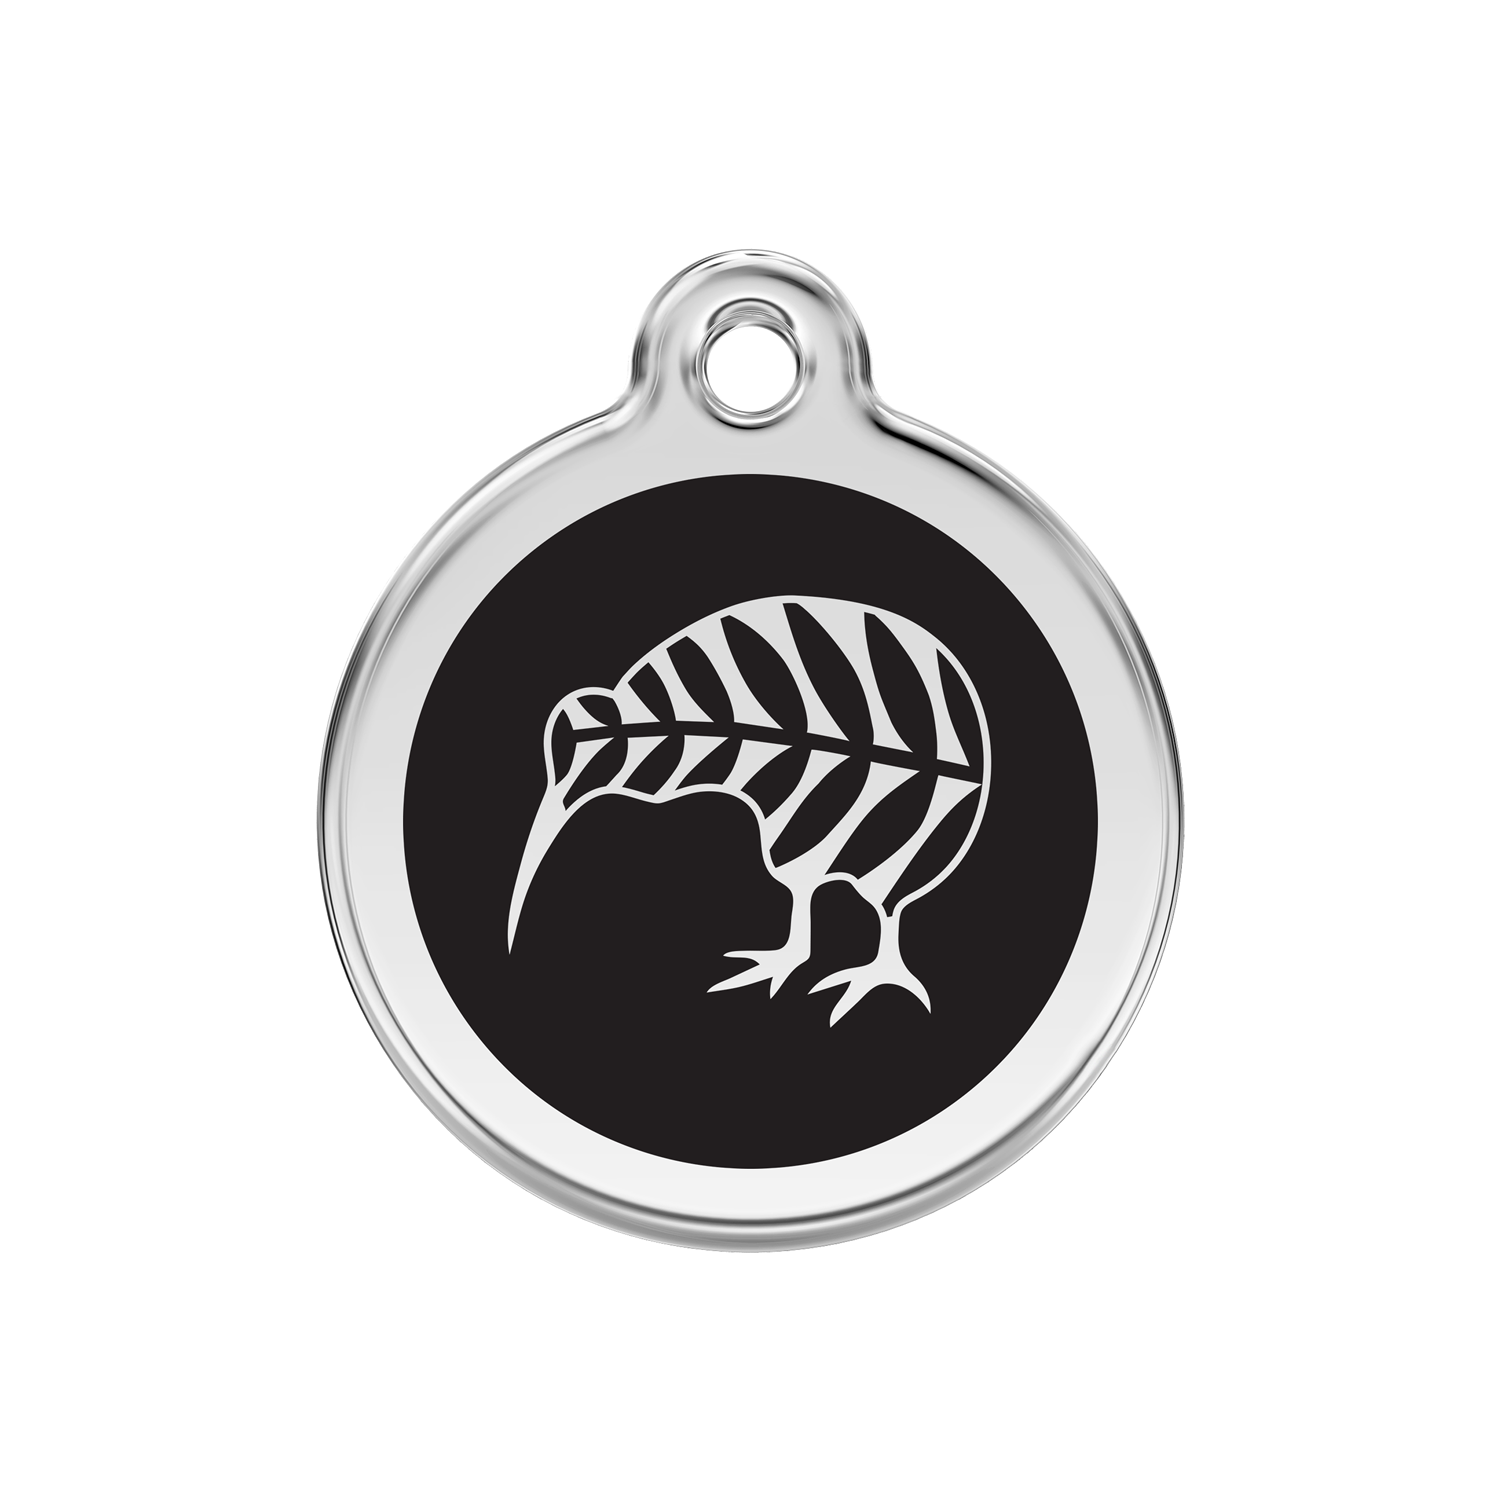 Black Kiwi Medium Enamel & Stainless Steel Tag>